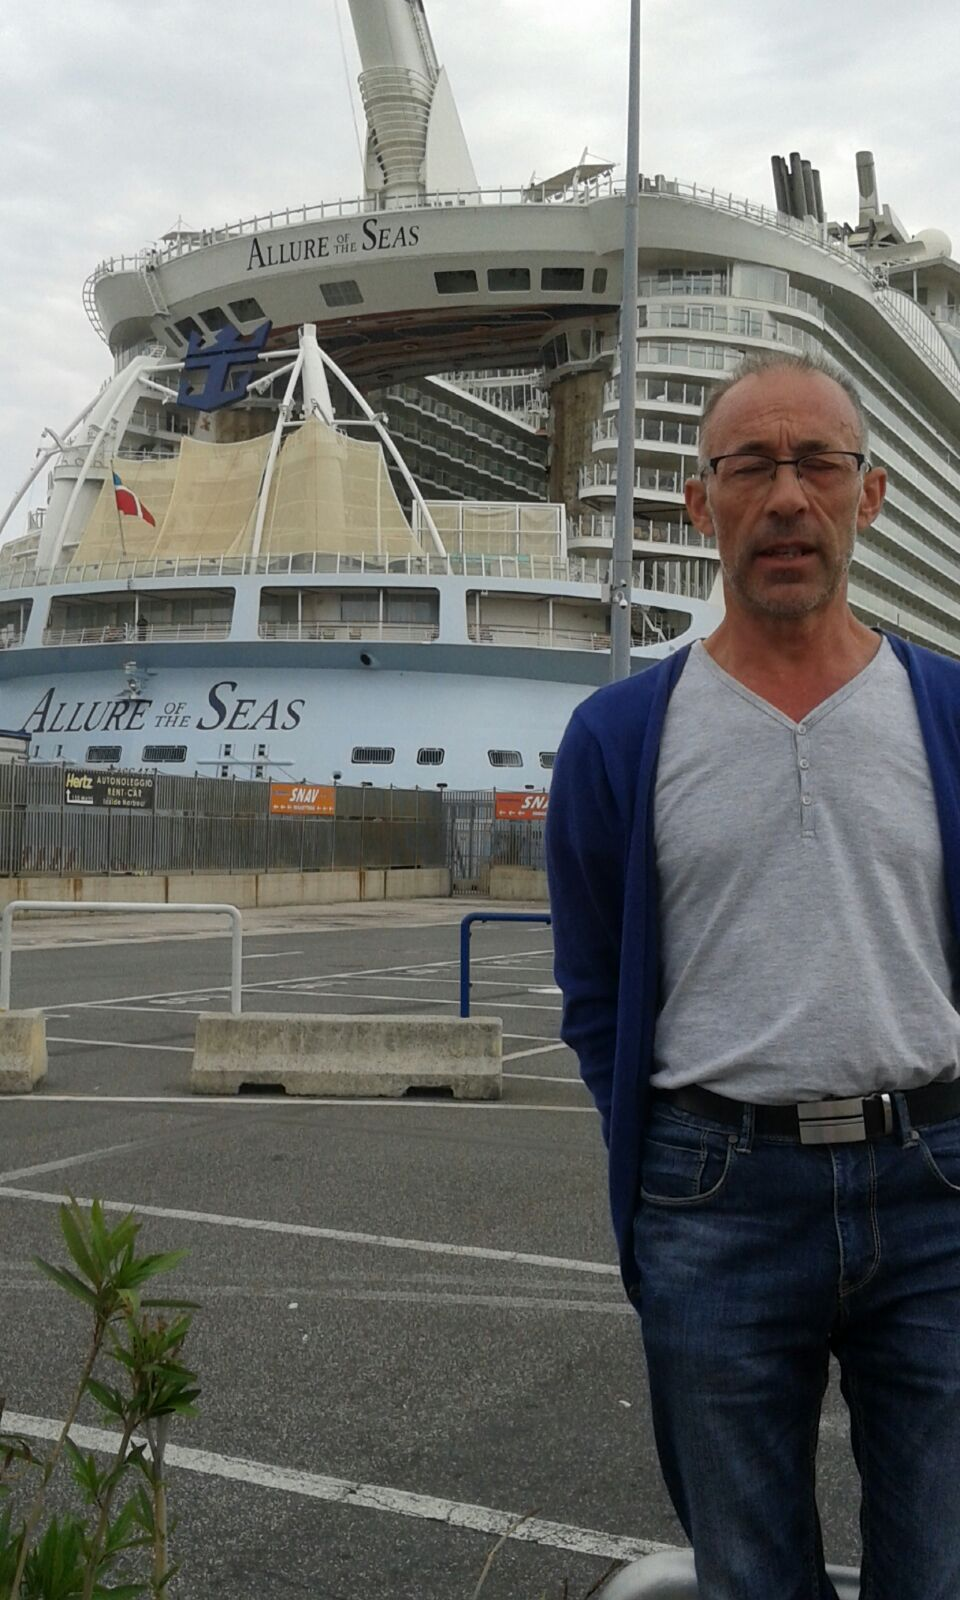 Enric con el Allure the seas al fondo